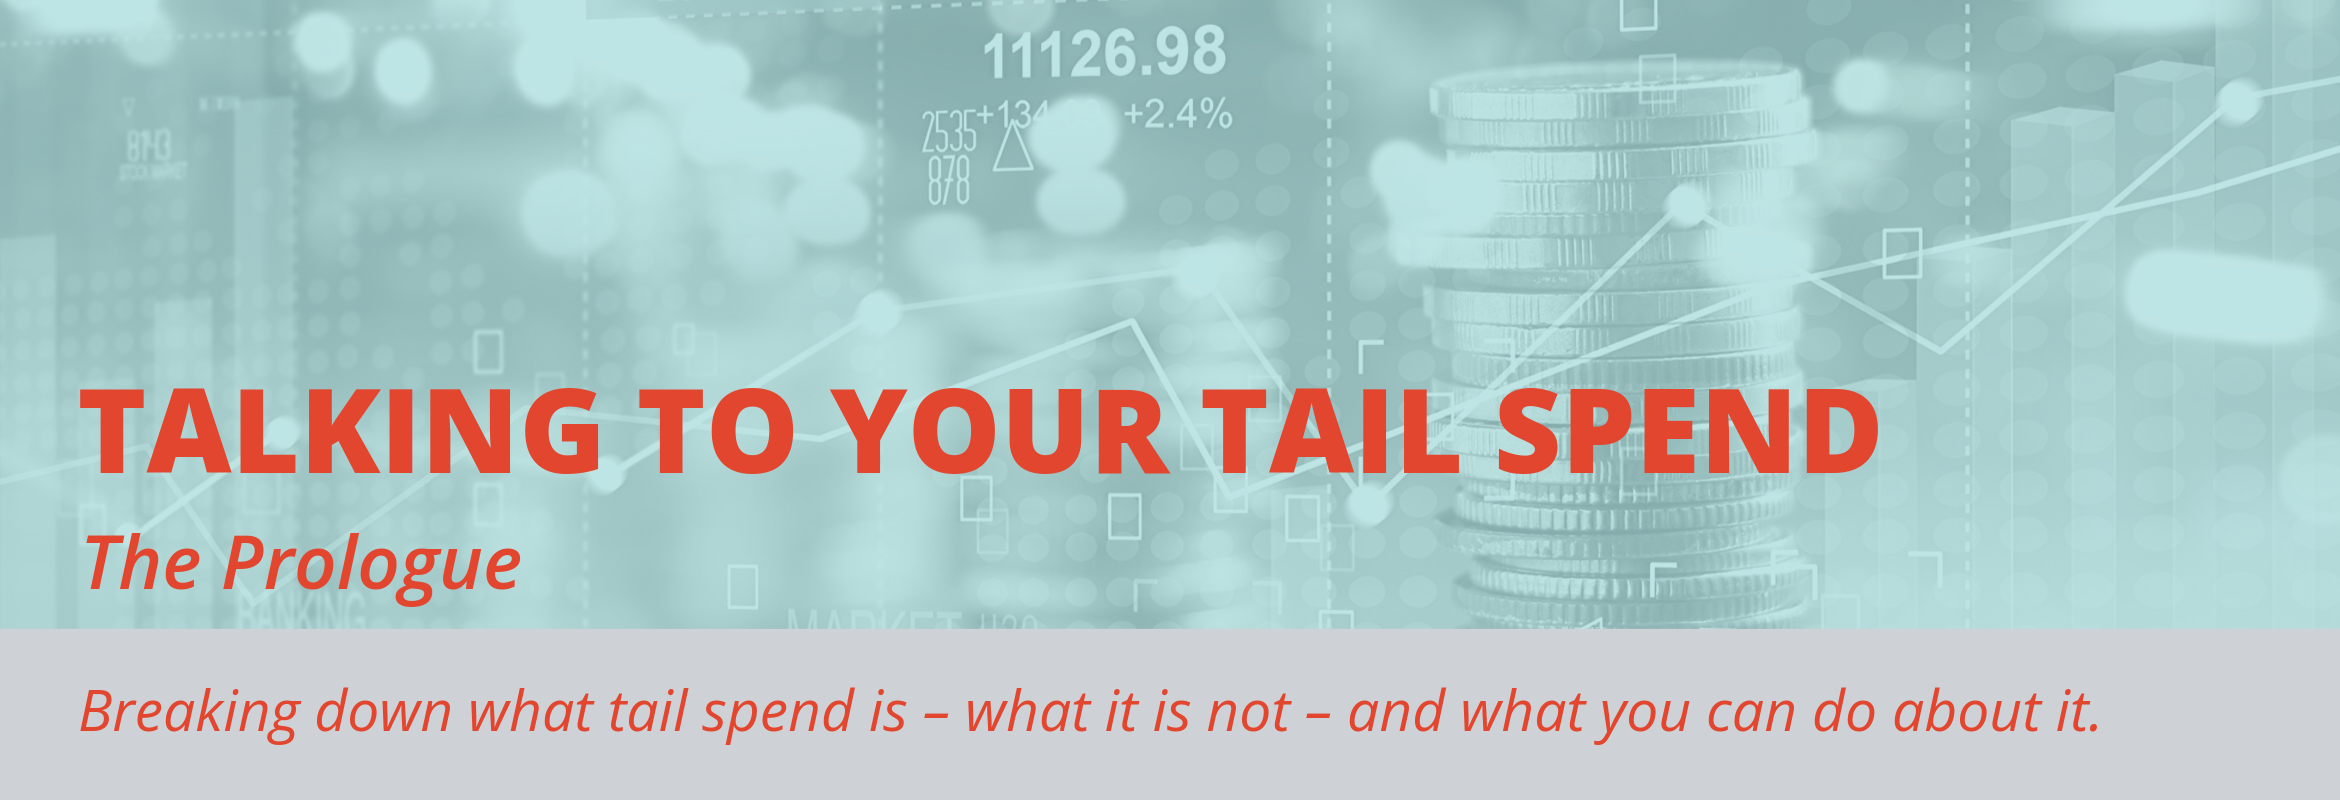 Talking to Your Tail Spend: The Prologue